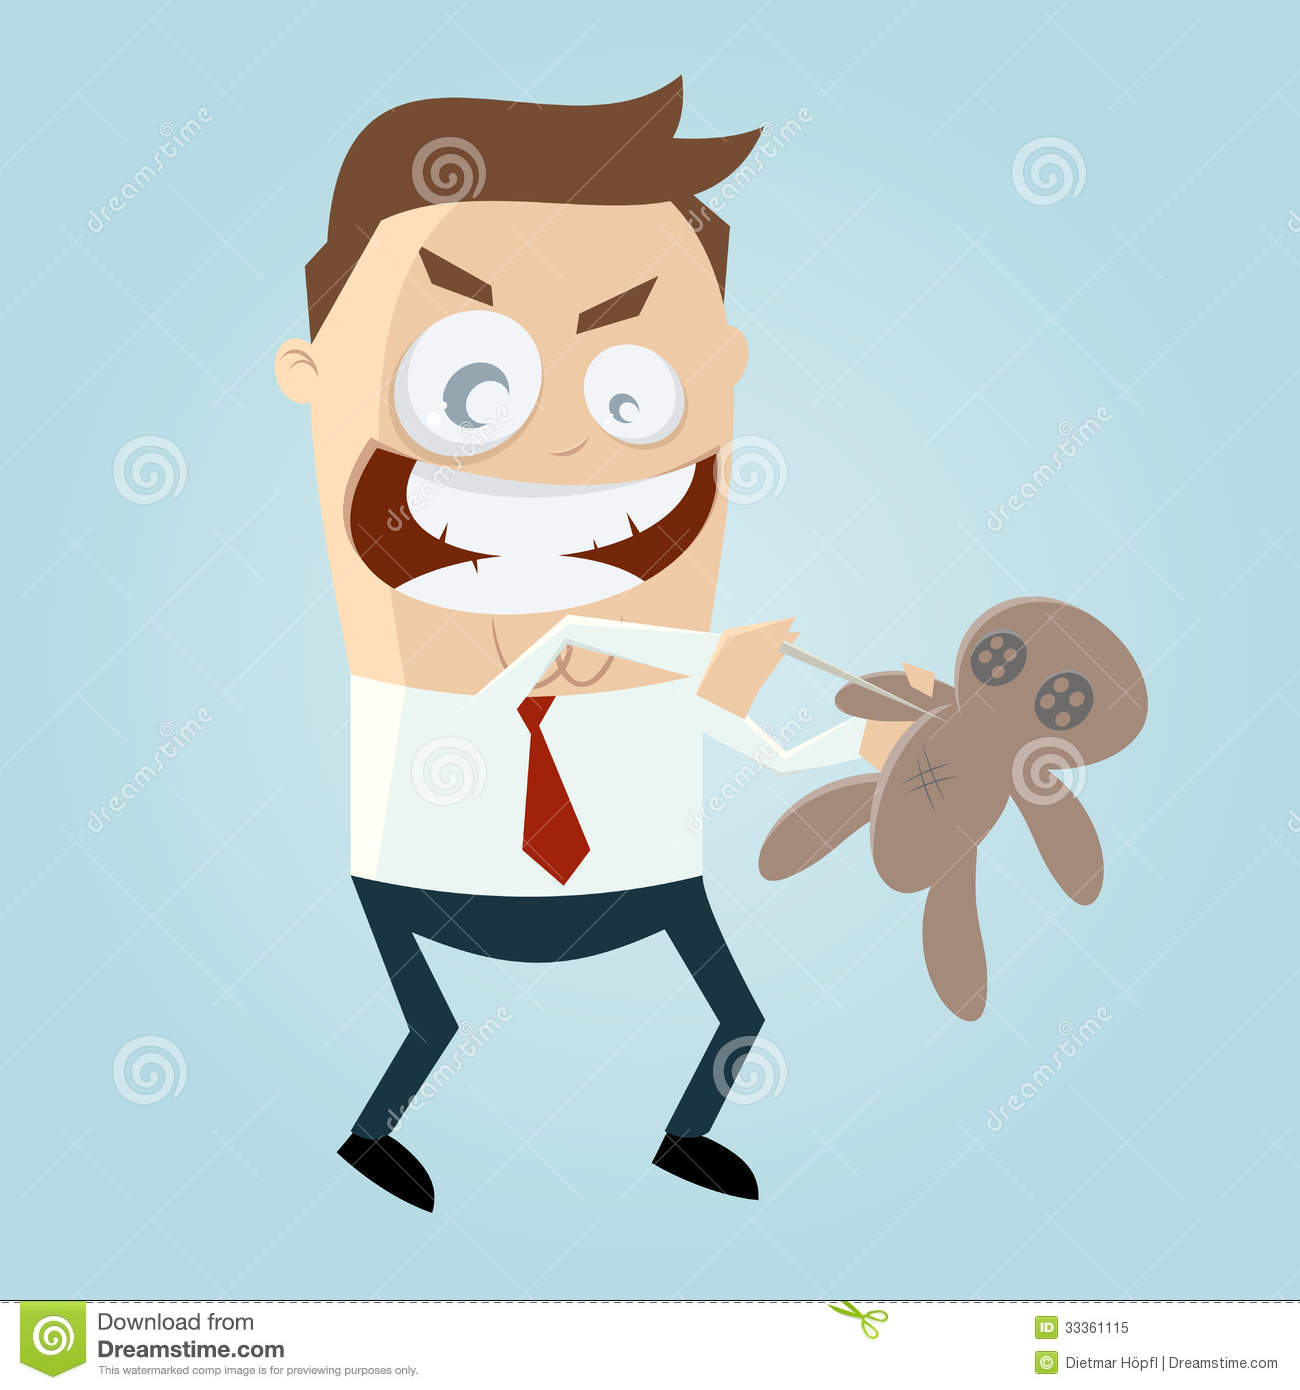 Cartoon Man With Voodoo Doll Royalty Free Stock Photo.